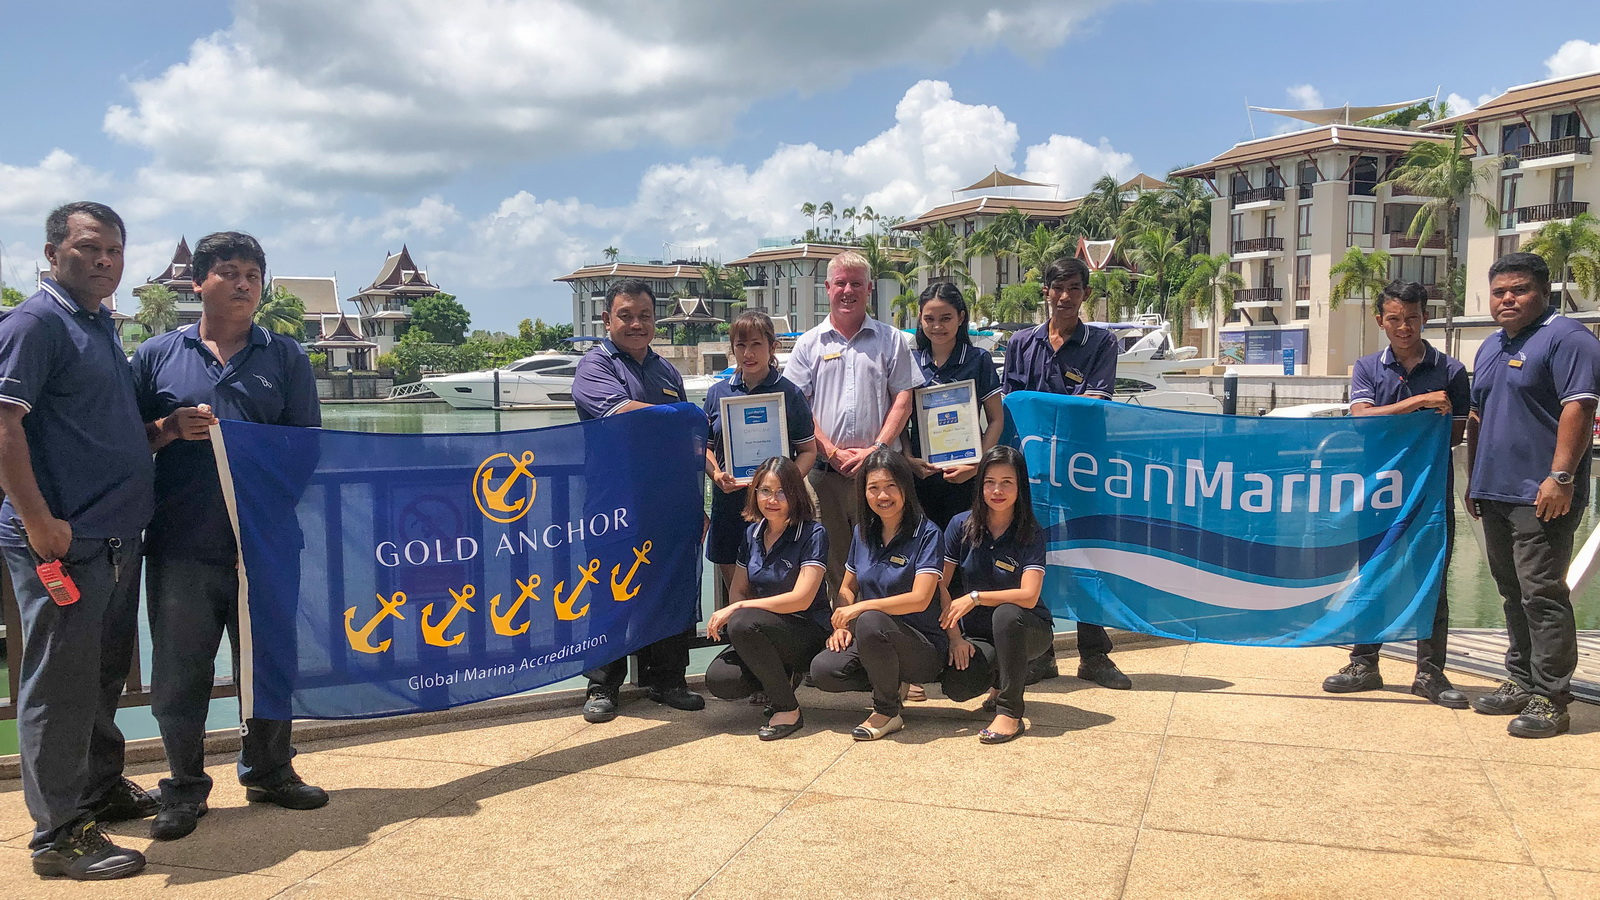 RPM awarded 5 Gold Anchors and Clean Marina